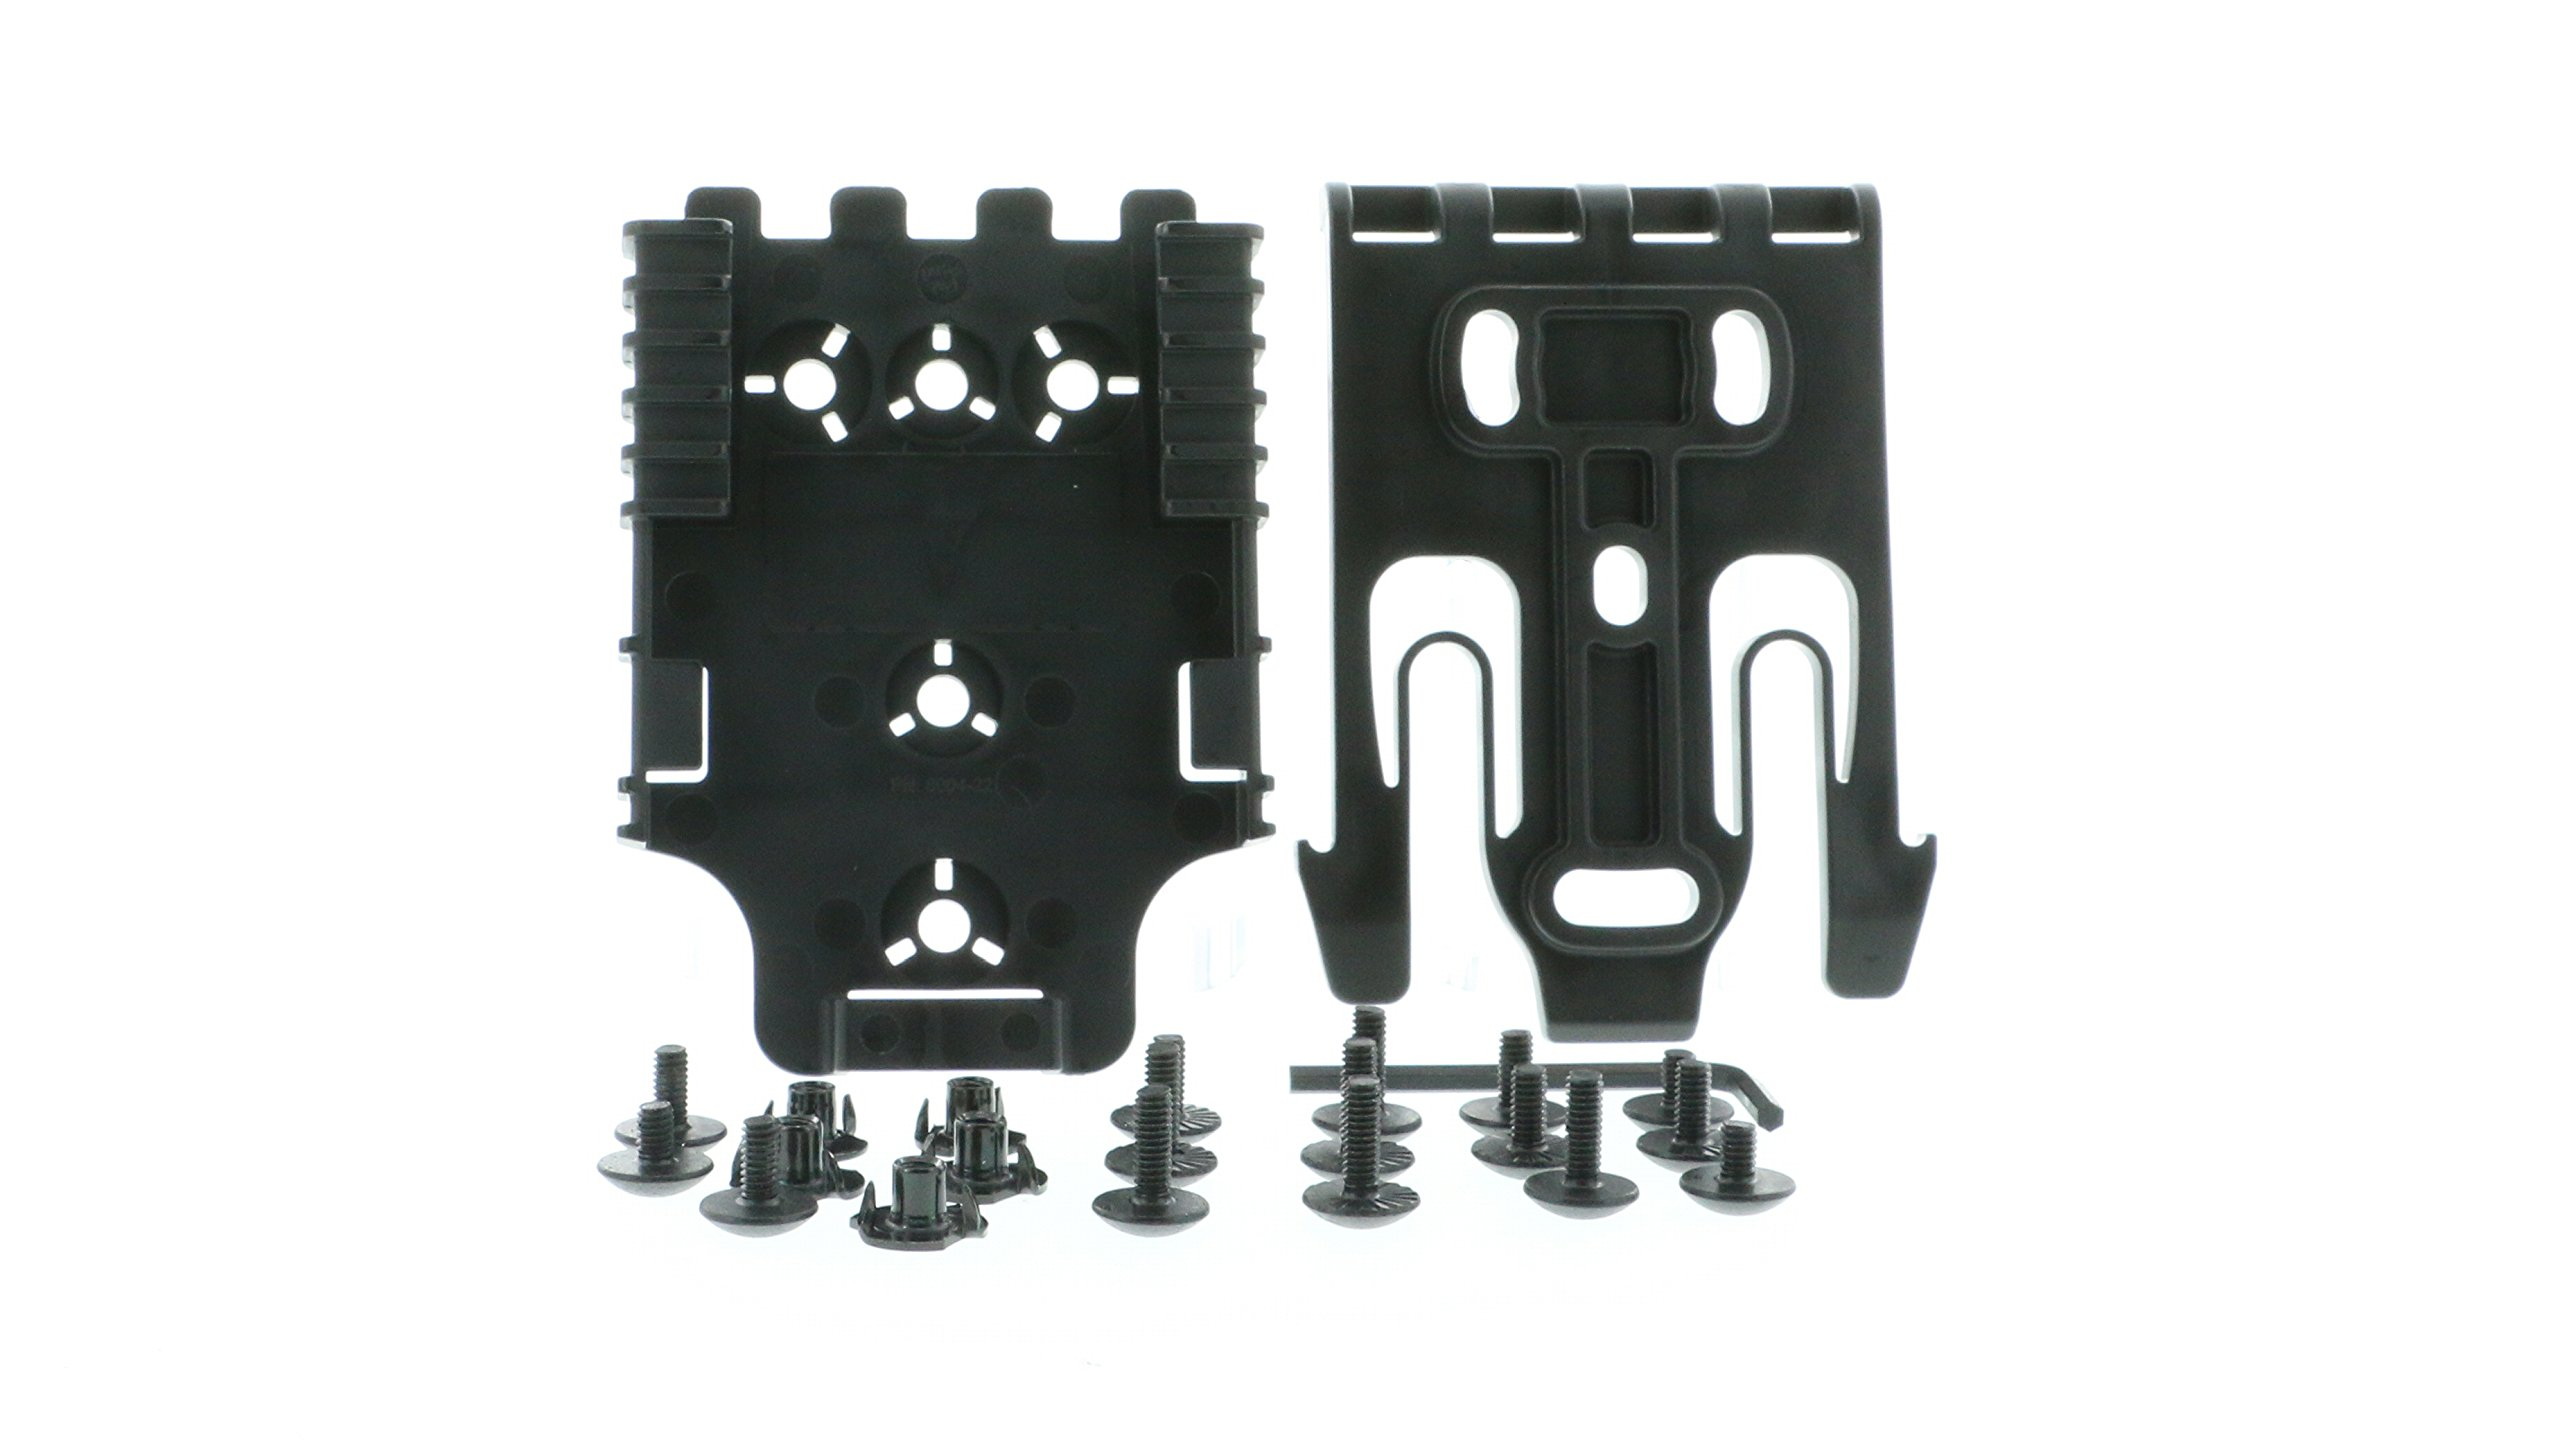 Safariland QLS Kit, (1 ea.) QLS 19 Fork & (2 ea.) QLS 22 Receivers Holsters, Black, Single Kit Only, One Size (1141786)